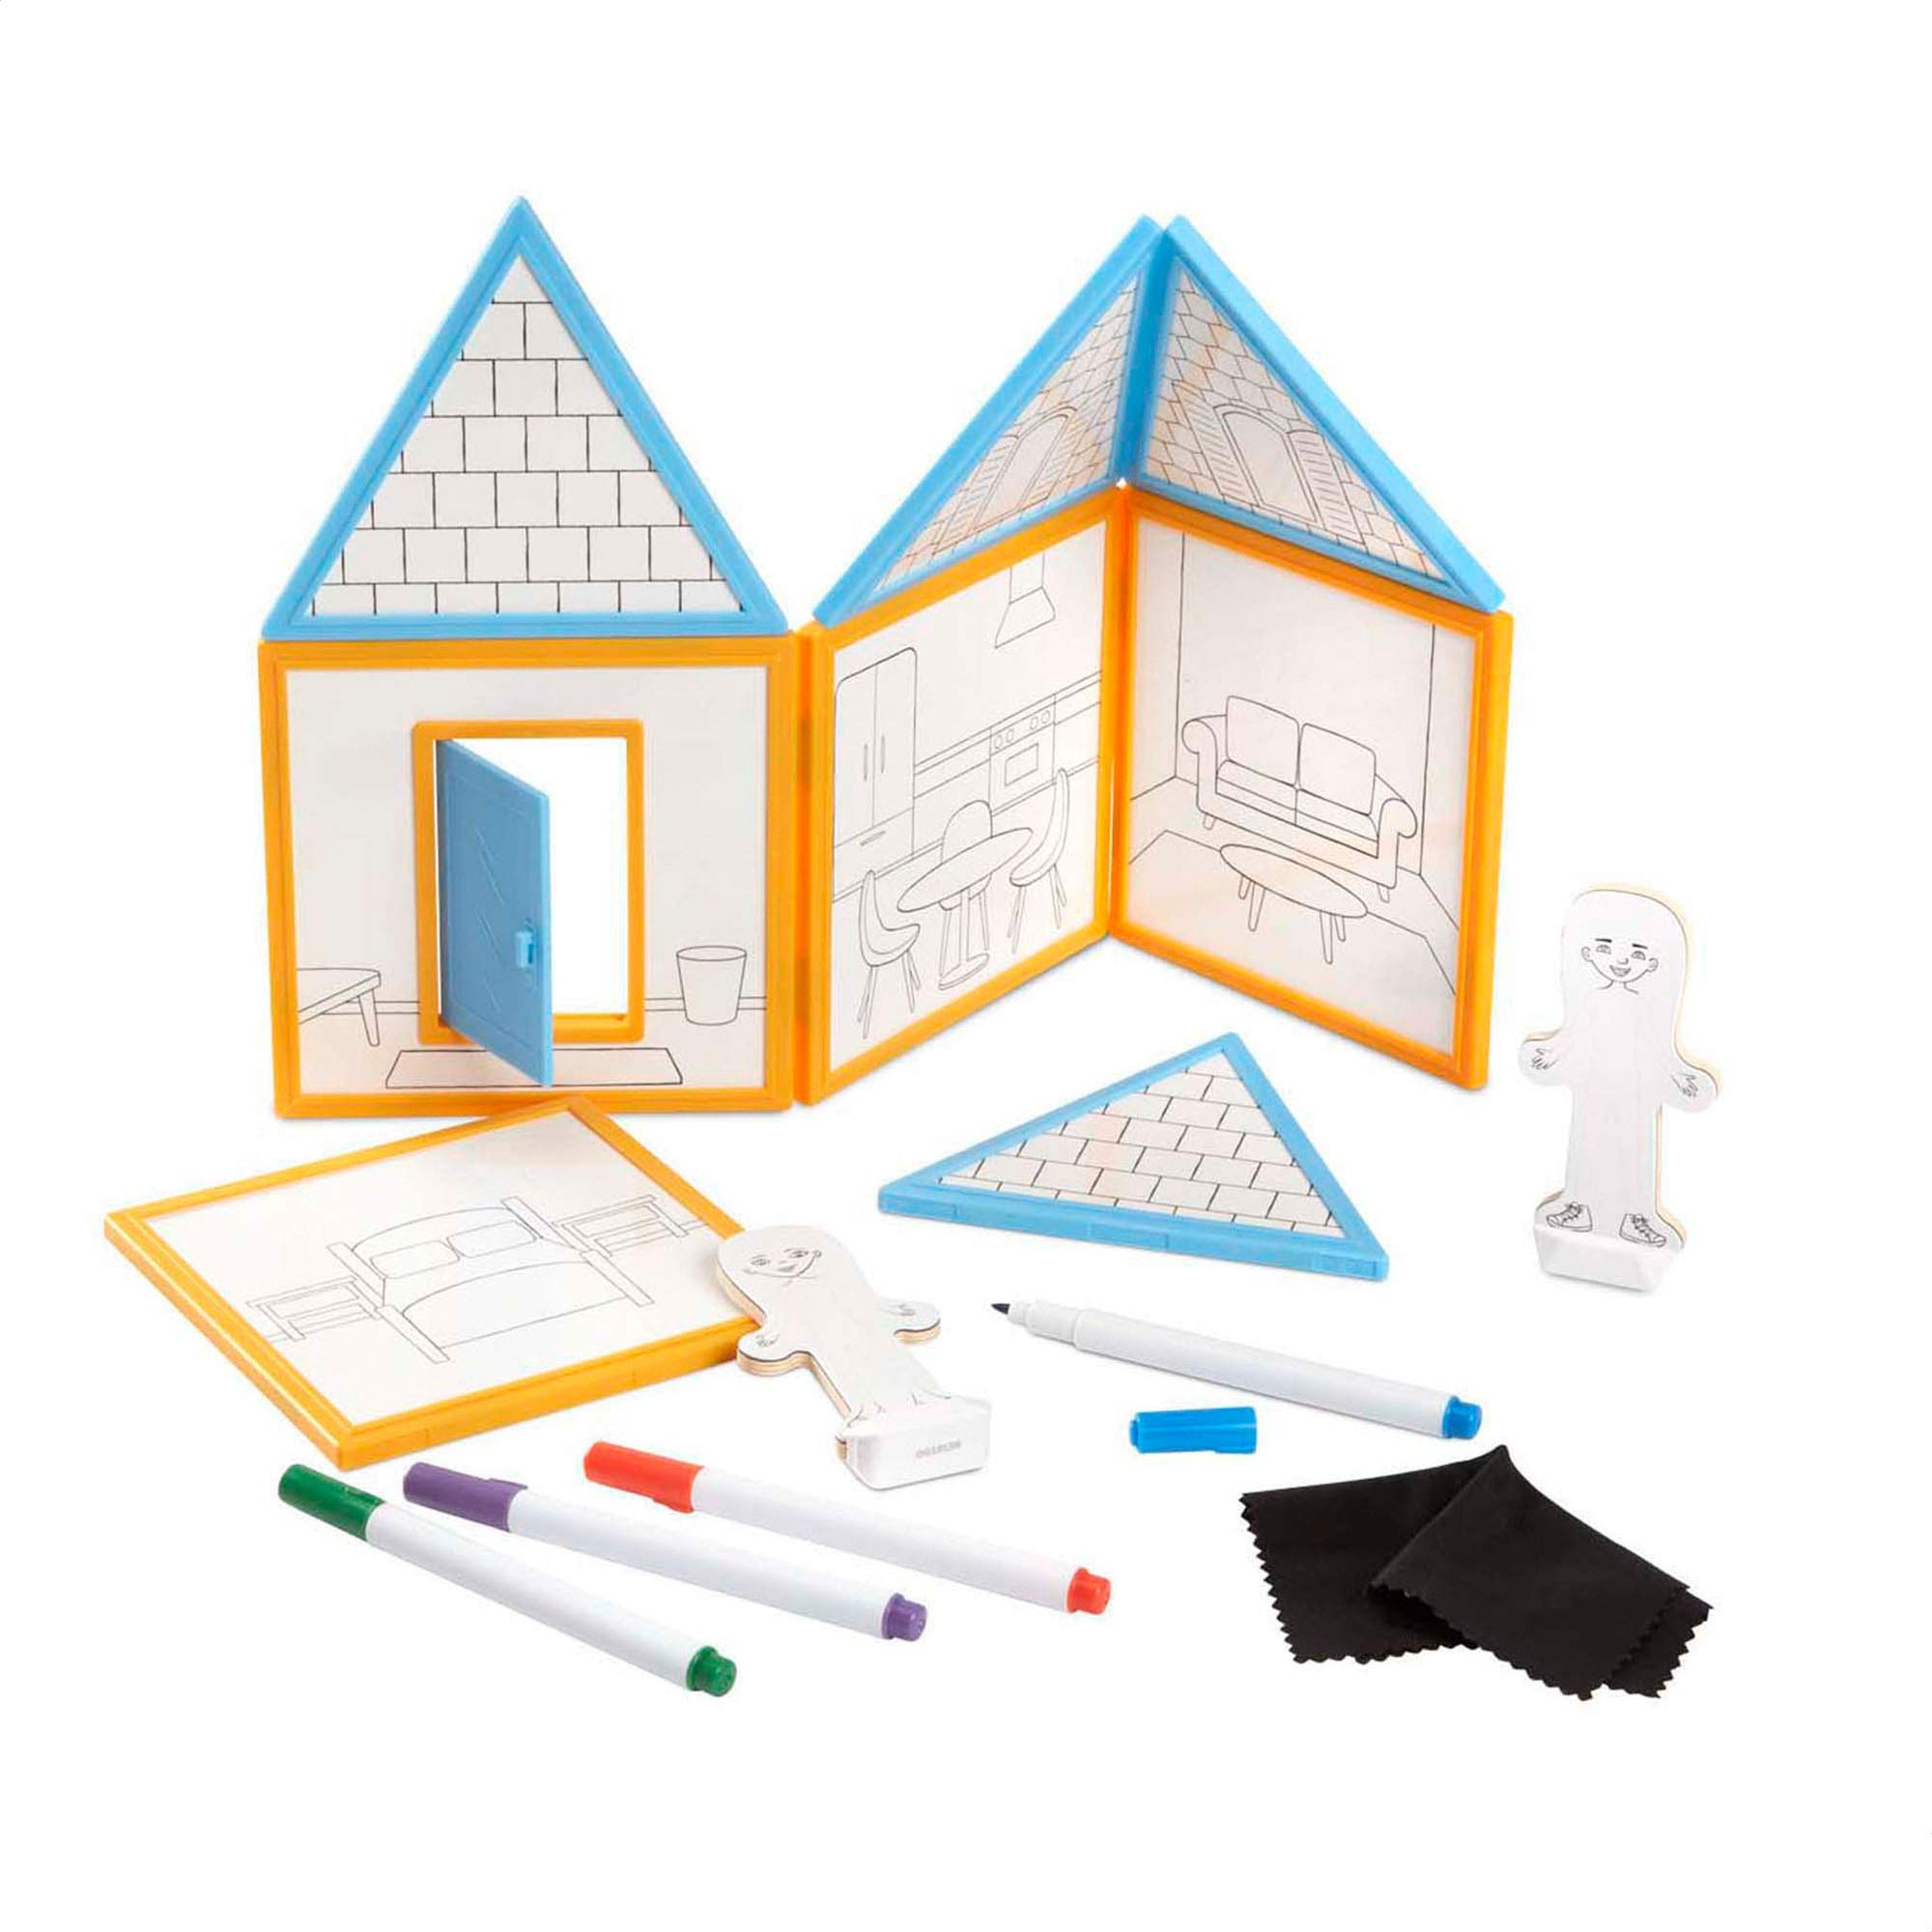 Melissa & Doug Magnetivity Magnetic Building Play Set - Draw & Build House (15 Pieces, 8 Panels, 4 Dry-Erase Markers, Great Gift for Girls and Boys - Best for 4, 5, 6, 7, 8, 9, and 10 Year Olds) by Melissa & Doug